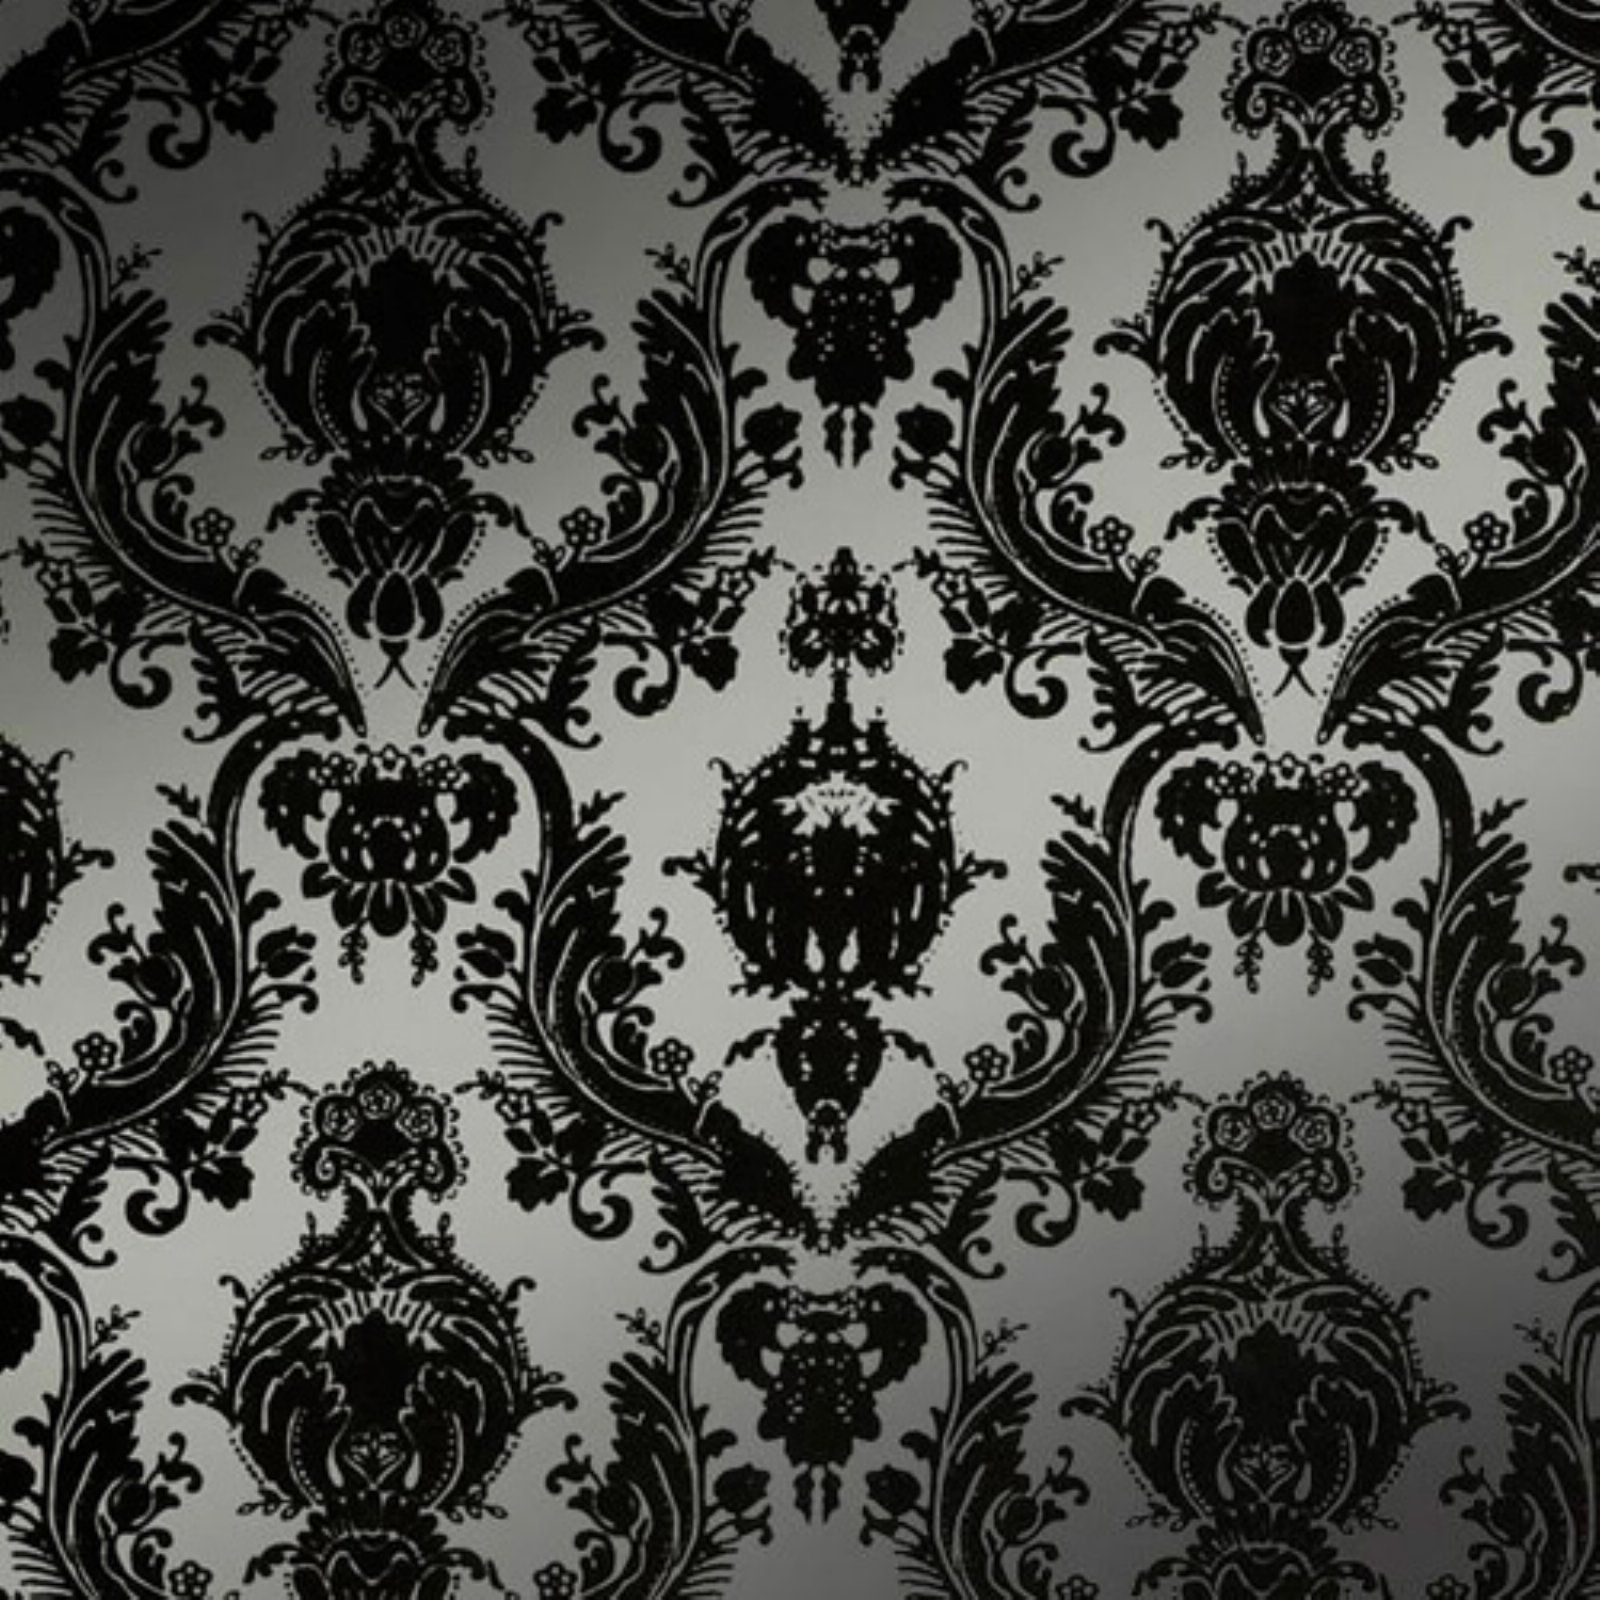 Tempaper Damsel Self Adhesive Wallpaper Www Hayneedle Com Victorian Wallpaper Gothic Wallpaper Silver Removable Wallpaper